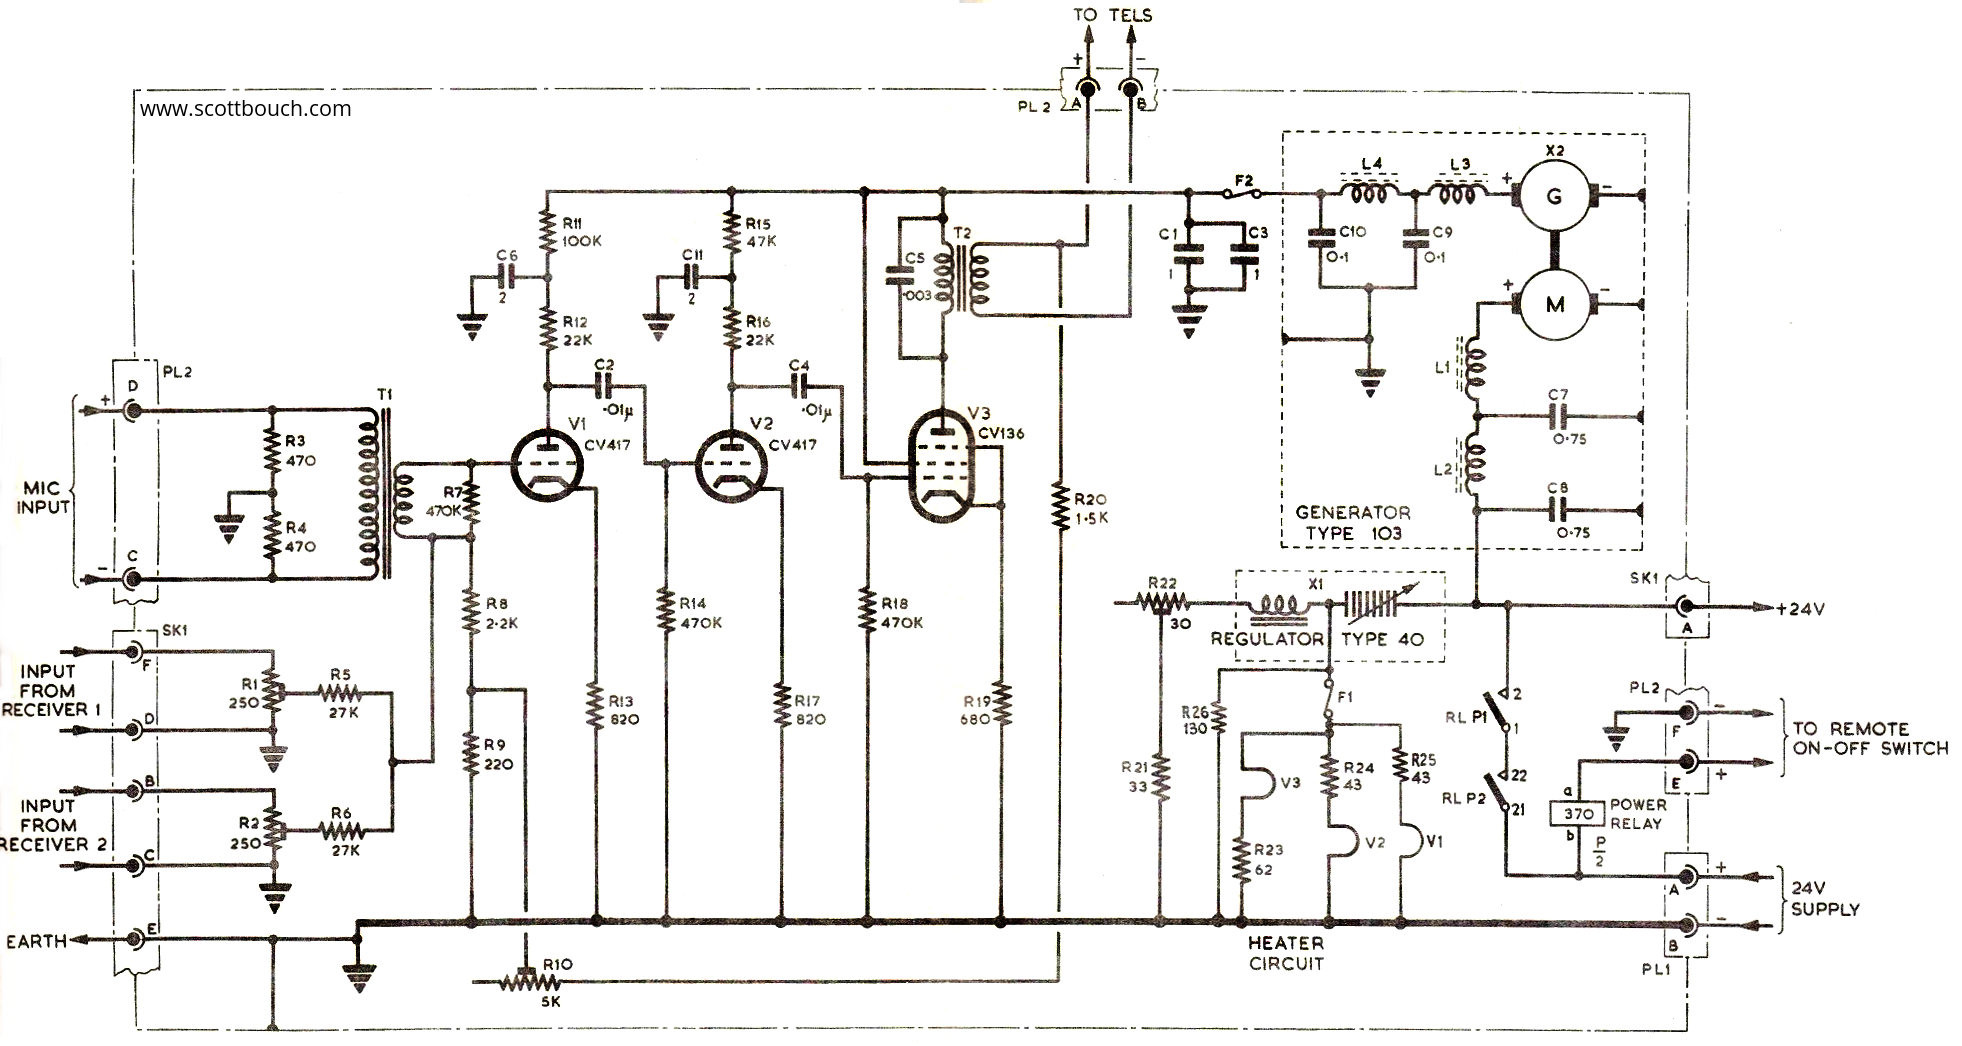 amplifier a1961 circuit 01 a1961 intercom amplifier scottbouch aircraft intercom wiring diagram at bayanpartner.co